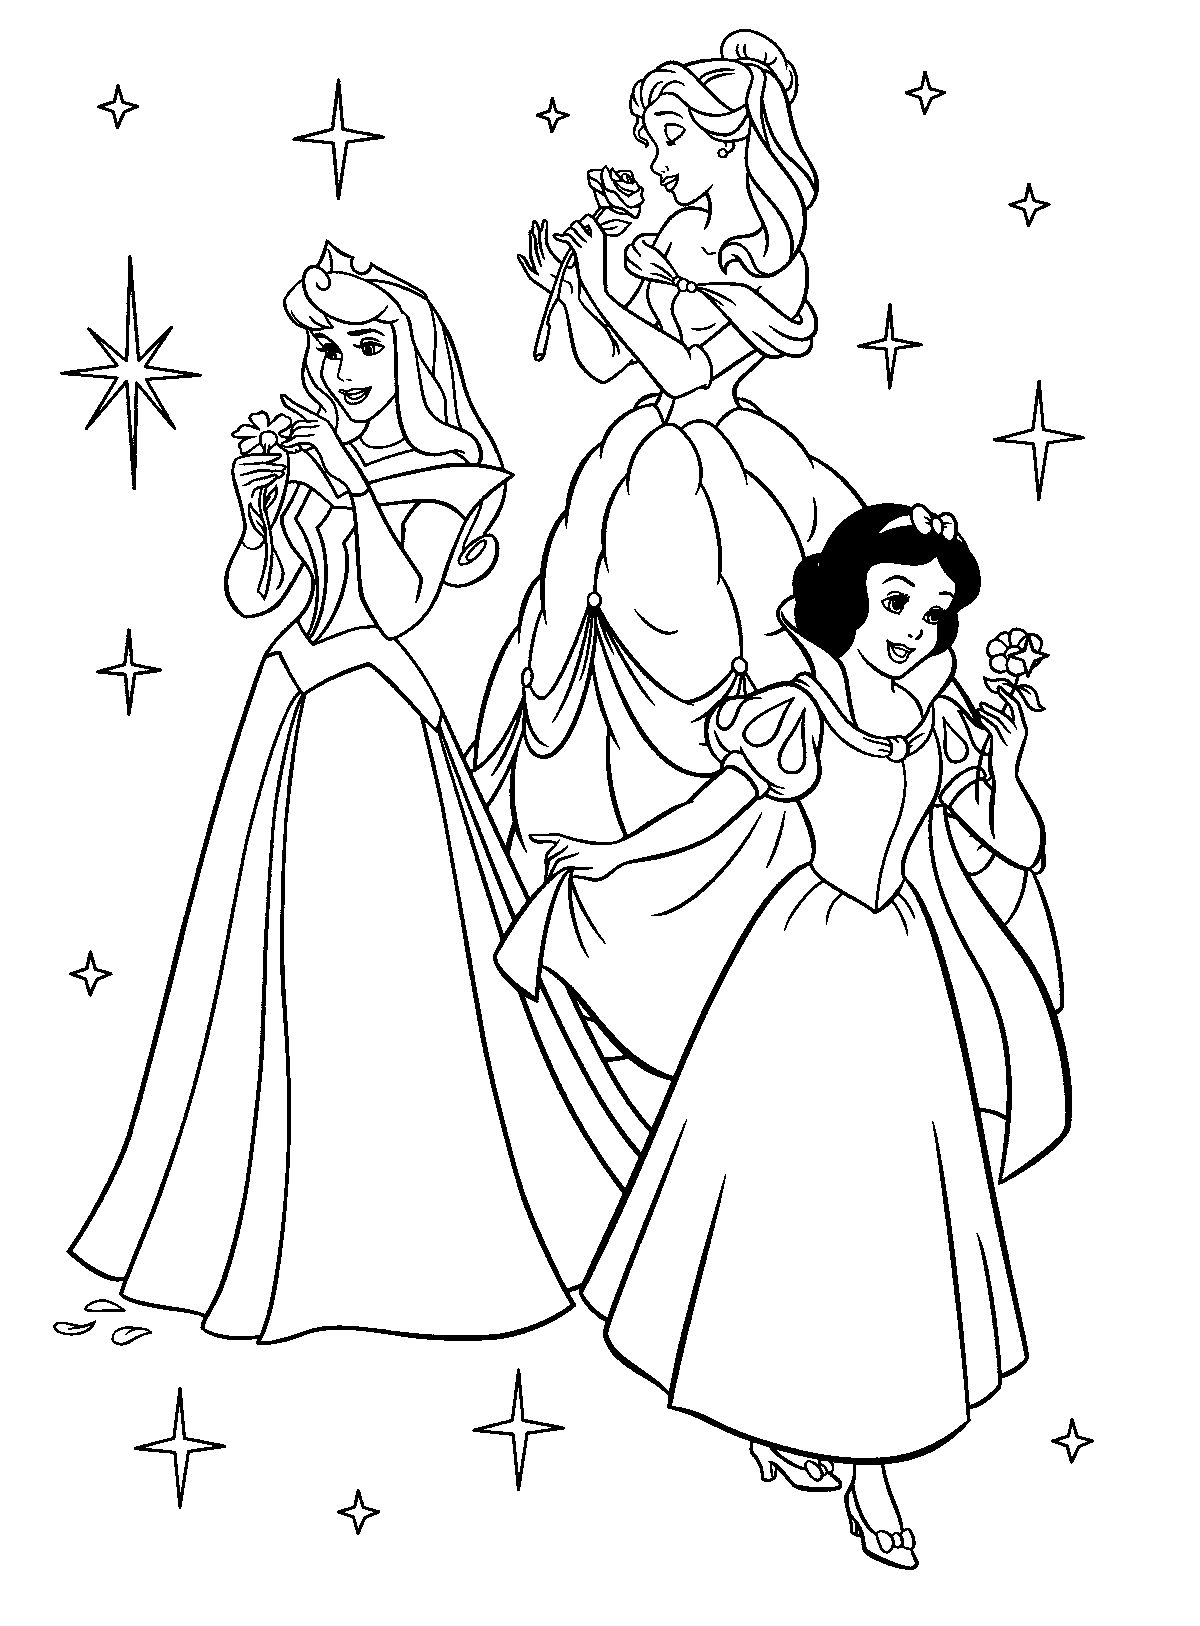 Walt Disney Characters Photo Walt Disney Coloring Pages Princess Ariel Ariel Coloring Pages Mermaid Coloring Pages Disney Princess Coloring Pages